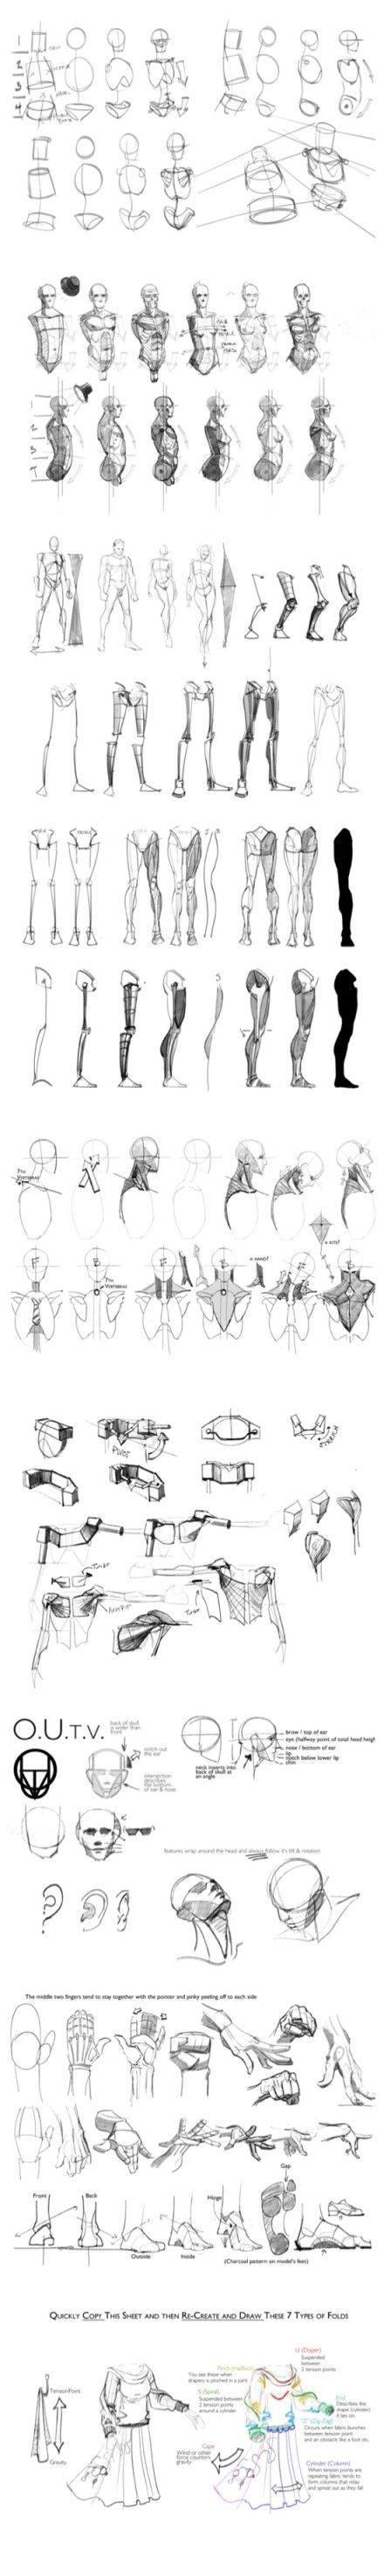 sigueme | Anatomy | Pinterest | Anatomy, Draw and Sketches